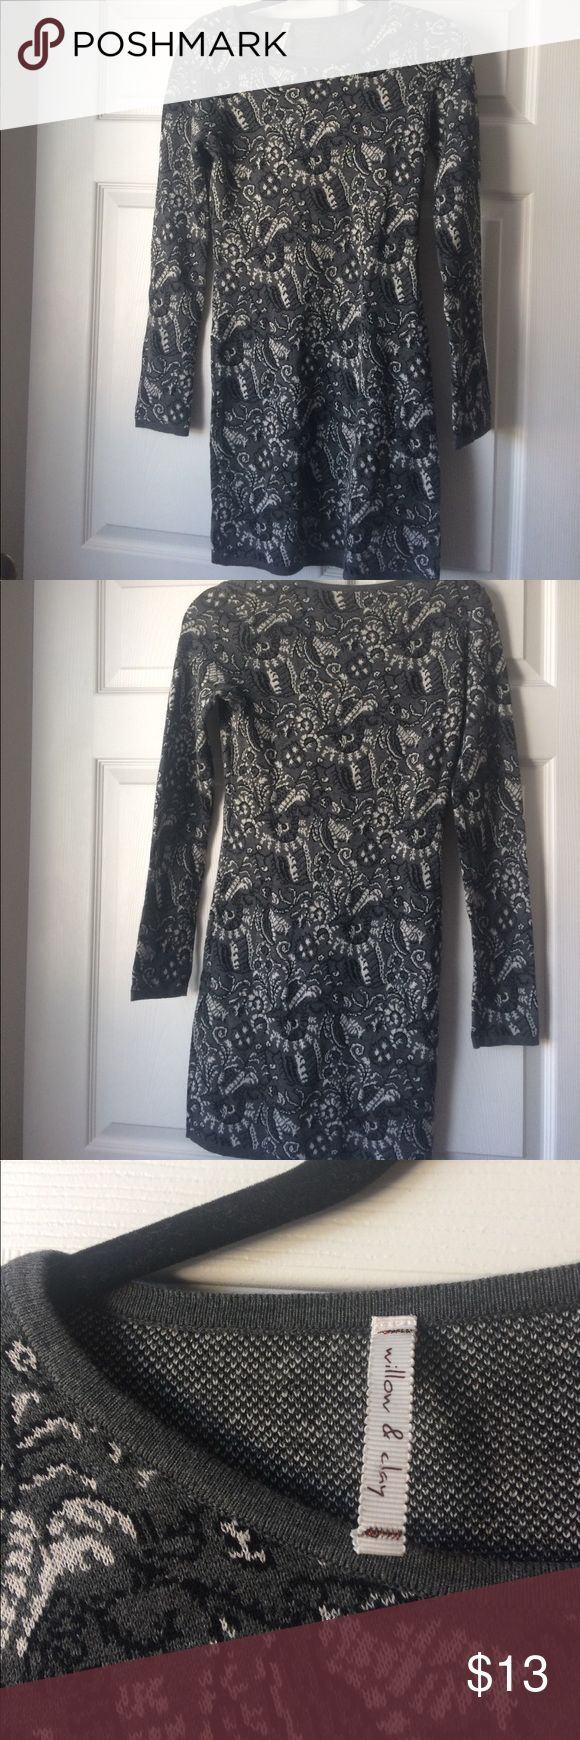 Willow and Clay - Gray Winter Dress 🌚 Bought this dress for a Christmas party and never wore it! Stretchy and thick, very warm. Form fitting so it looks great with curves! Willow & Clay Dresses Long Sleeve